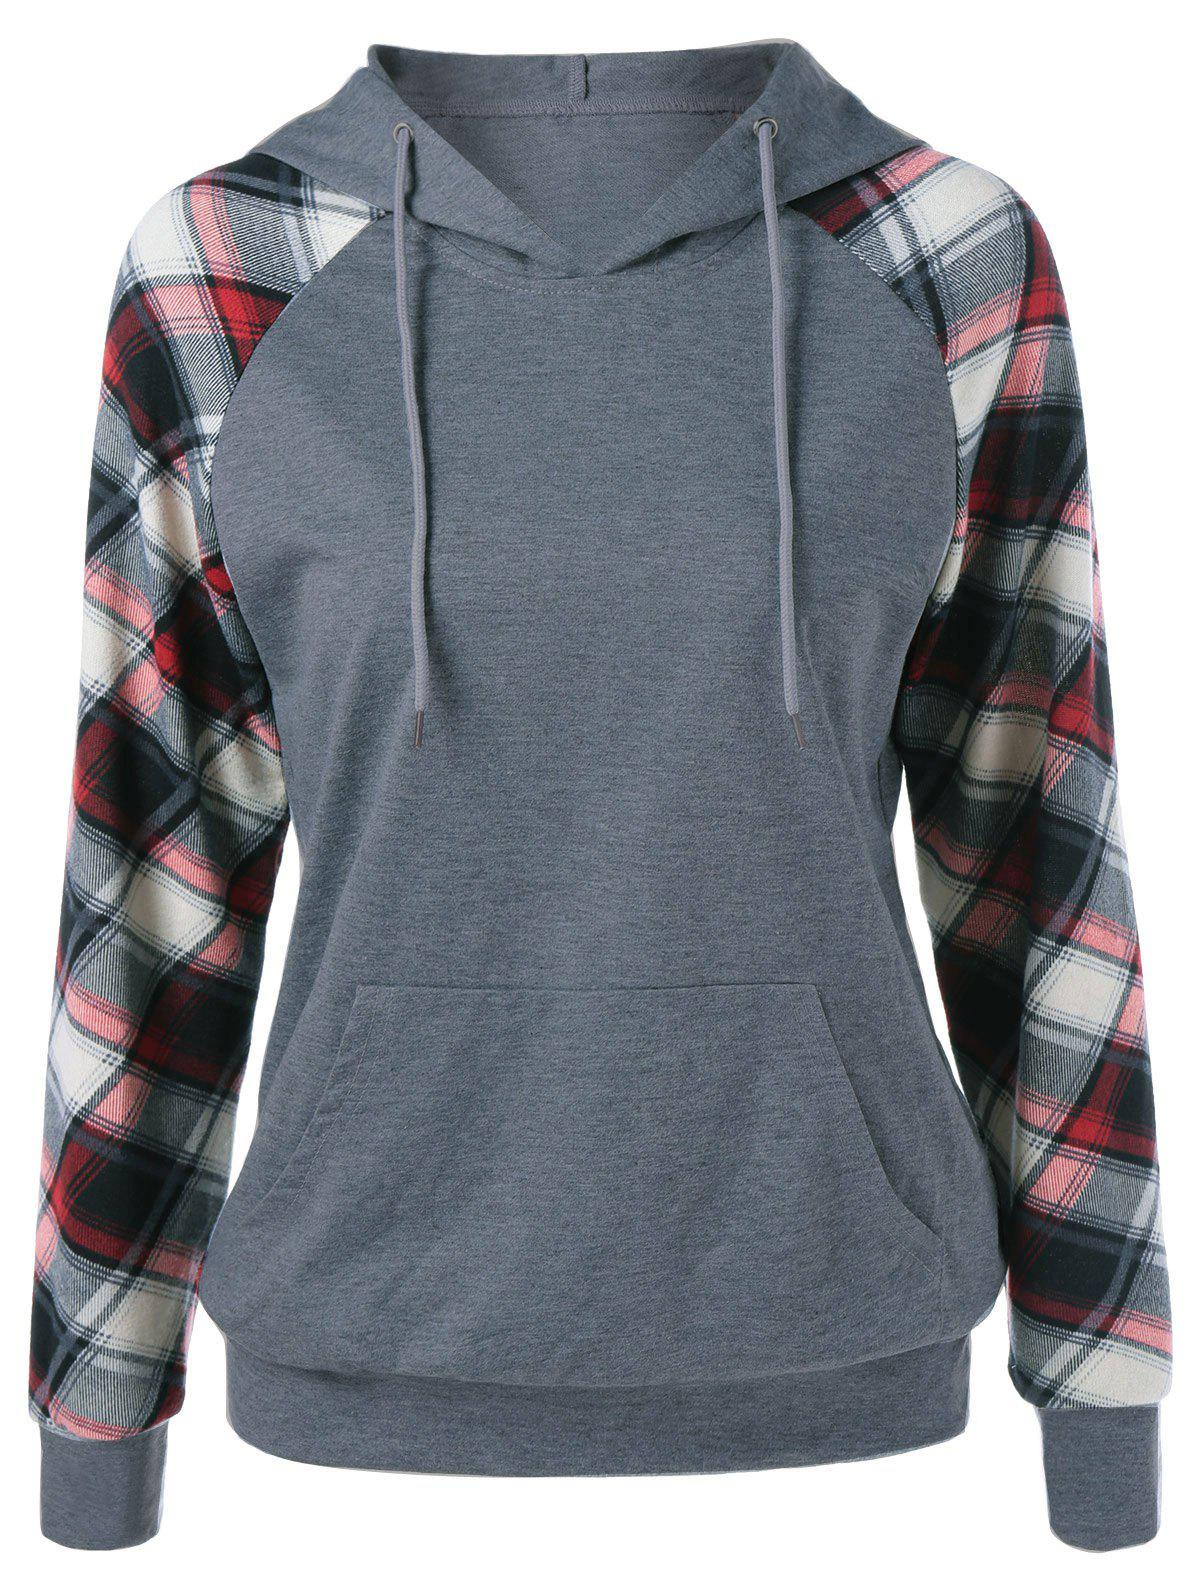 Plaid Trim Single Pocket HoodieWOMEN<br><br>Size: M; Color: GRAY; Material: Polyester; Shirt Length: Regular; Sleeve Length: Full; Style: Casual; Pattern Style: Plaid; Season: Fall,Spring; Weight: 0.4000kg; Package Contents: 1 x Hoodie;